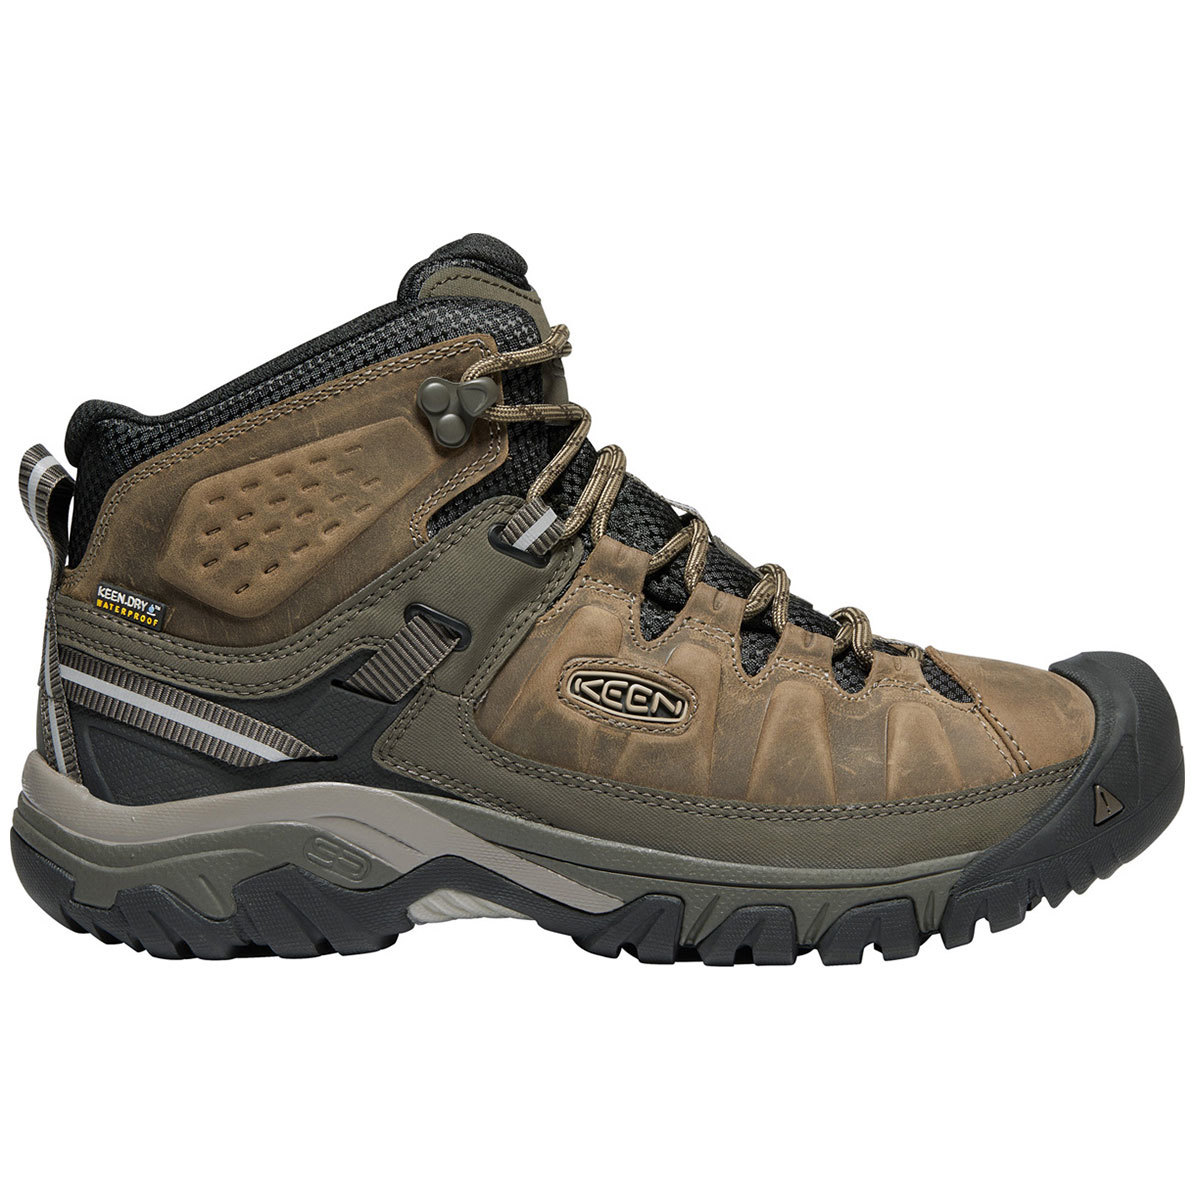 Keen Men's Targhee Iii Waterproof Mid Hiking Boots - Brown, 14